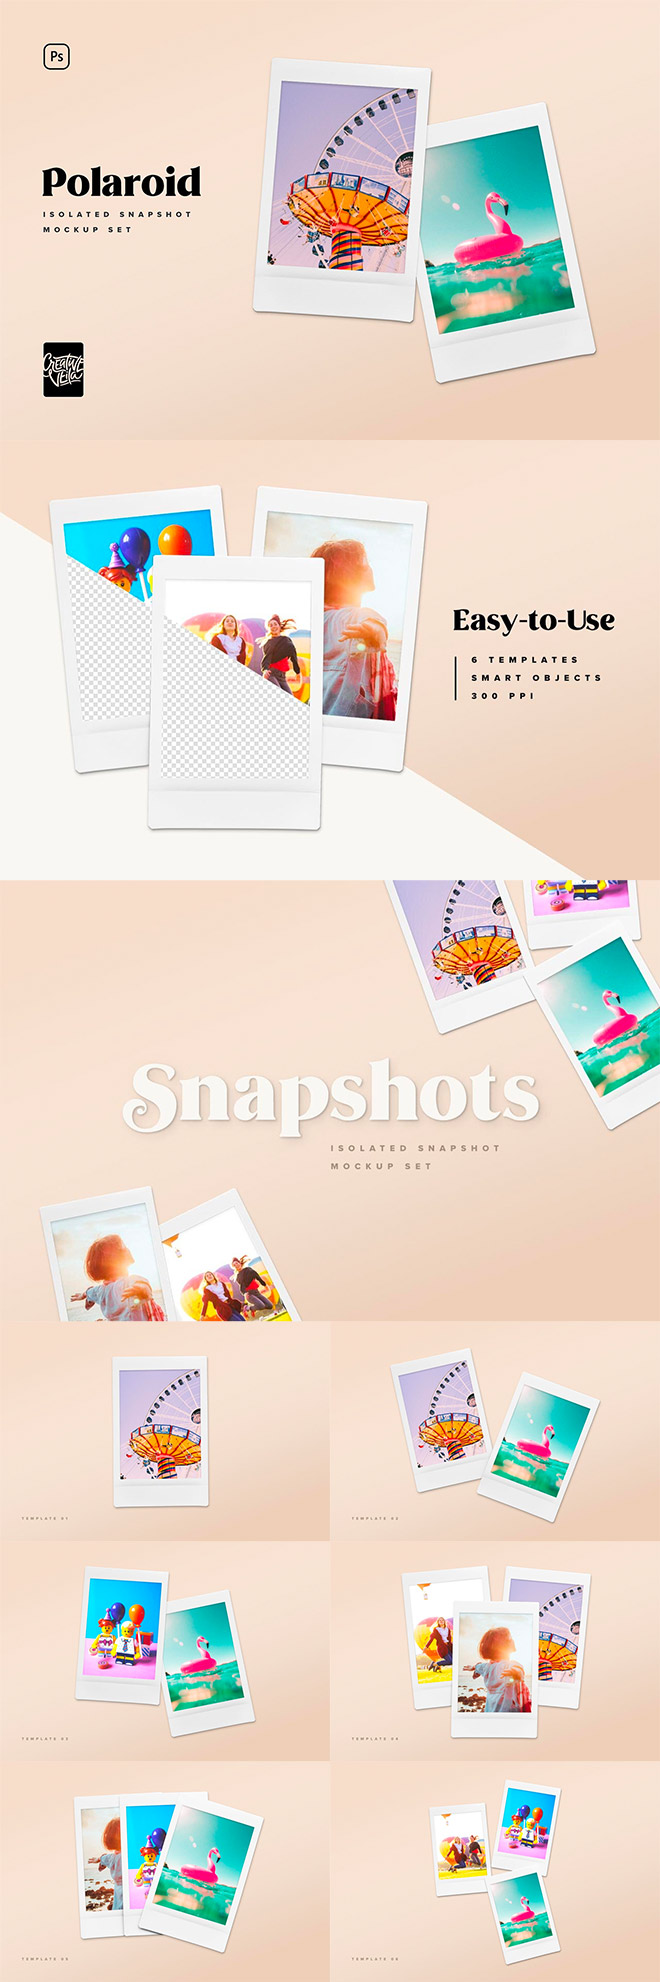 Polaroid Picture Mock-up Templates for Premium Members